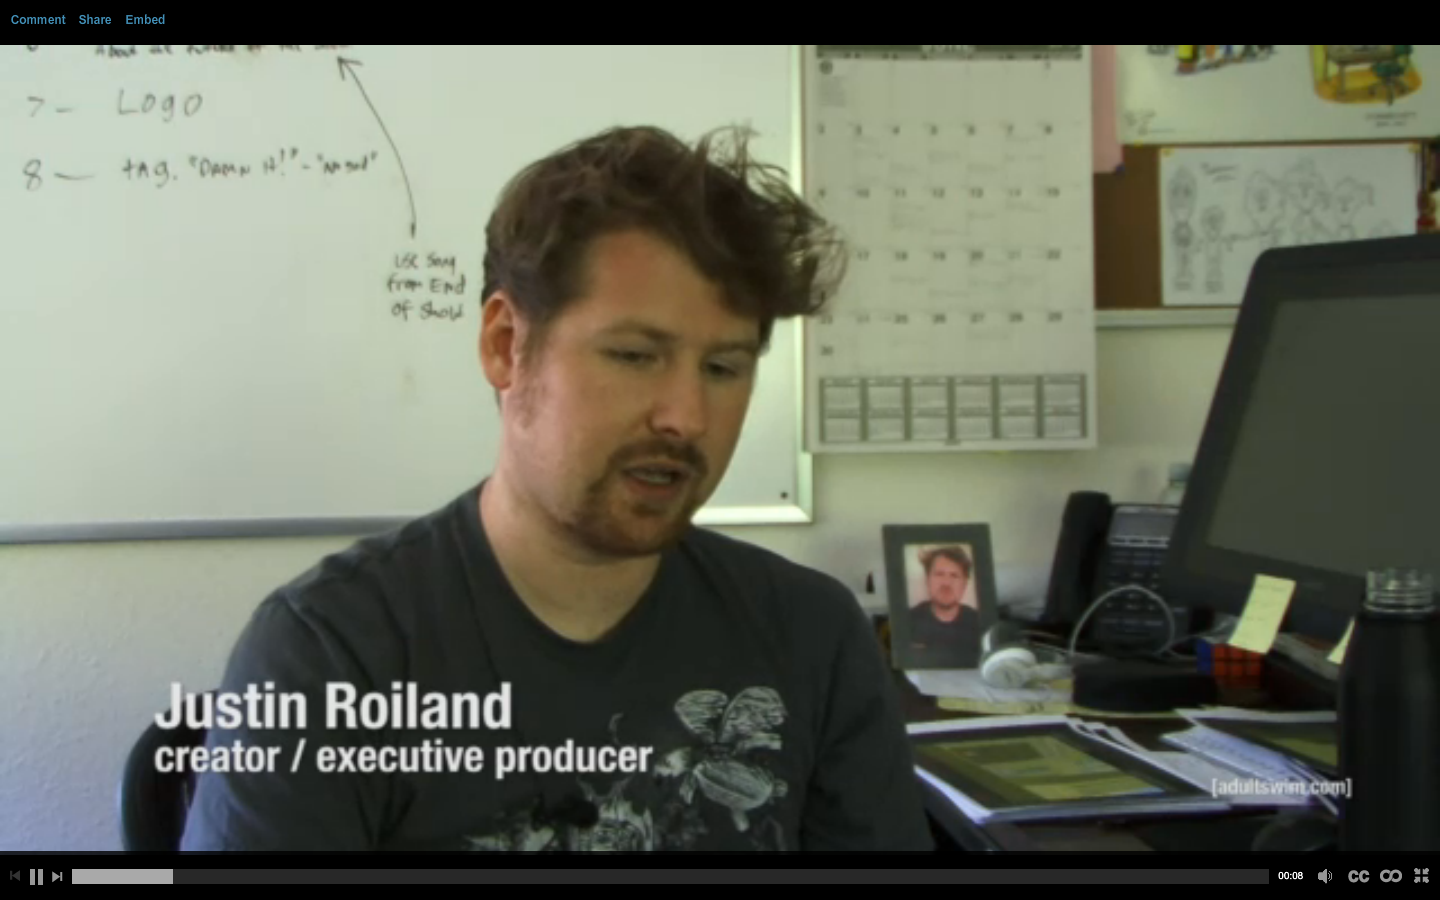 justin roiland and ethan kleinjustin roiland твиттер, justin roiland vr, justin roiland vr game, justin roiland game, justin roiland net worth, justin roiland tumblr, justin roiland alex hirsch, justin roiland dan harmon, justin roiland gravity falls, justin roiland interview, justin roiland cancer, justin roiland mbti, justin roiland art, justin roiland and ethan klein, justin roiland advice, justin roiland influences, justin roiland game grumps, justin roiland h3h3, justin roiland the weeknd, justin roiland music